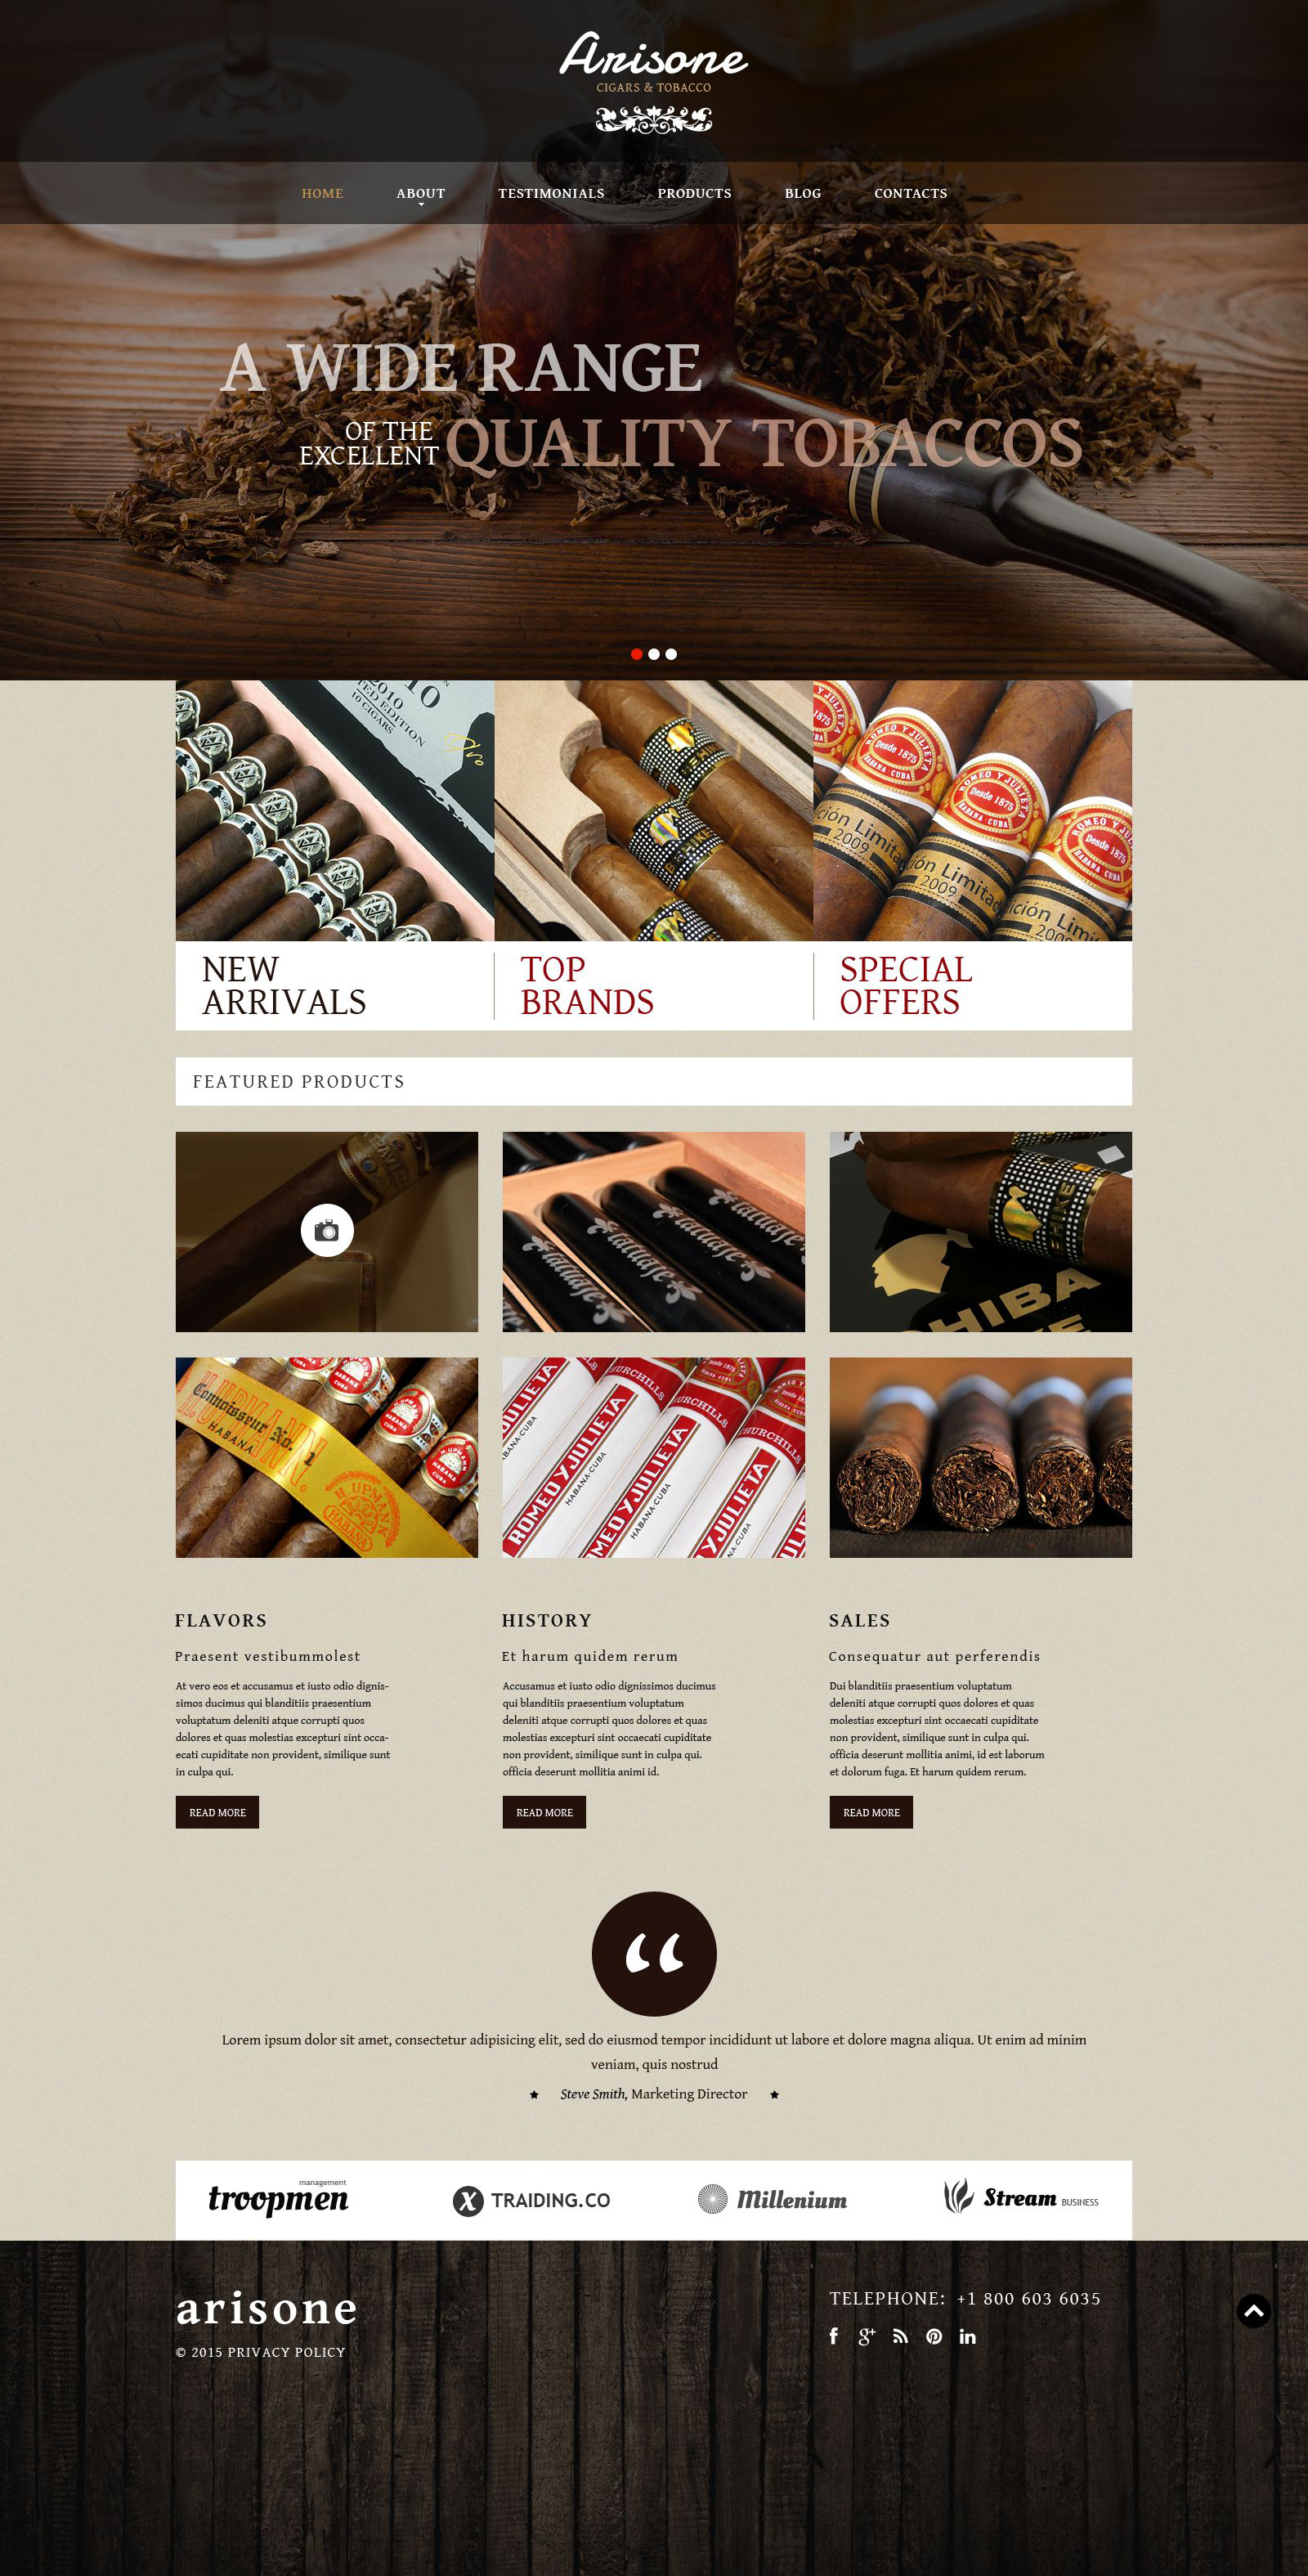 The Arizone Cigars Cigarette Store Store WordPress Design 52945, one of the best WordPress themes of its kind (business, most popular), also known as Arizone cigars cigarette store store WordPress template, offer WordPress template, bestseller WordPress template, prices dealer WordPress template, shopping WordPress template, sale WordPress template, service WordPress template, things WordPress template, stuff WordPress template, tobacco WordPress template, cigarette-stub WordPress template, cigarette WordPress template, cigars and related with Arizone cigars cigarette store store, offer, bestseller, prices dealer, shopping, sale, service, things, stuff, tobacco, cigarette-stub, cigarette, cigars, etc.